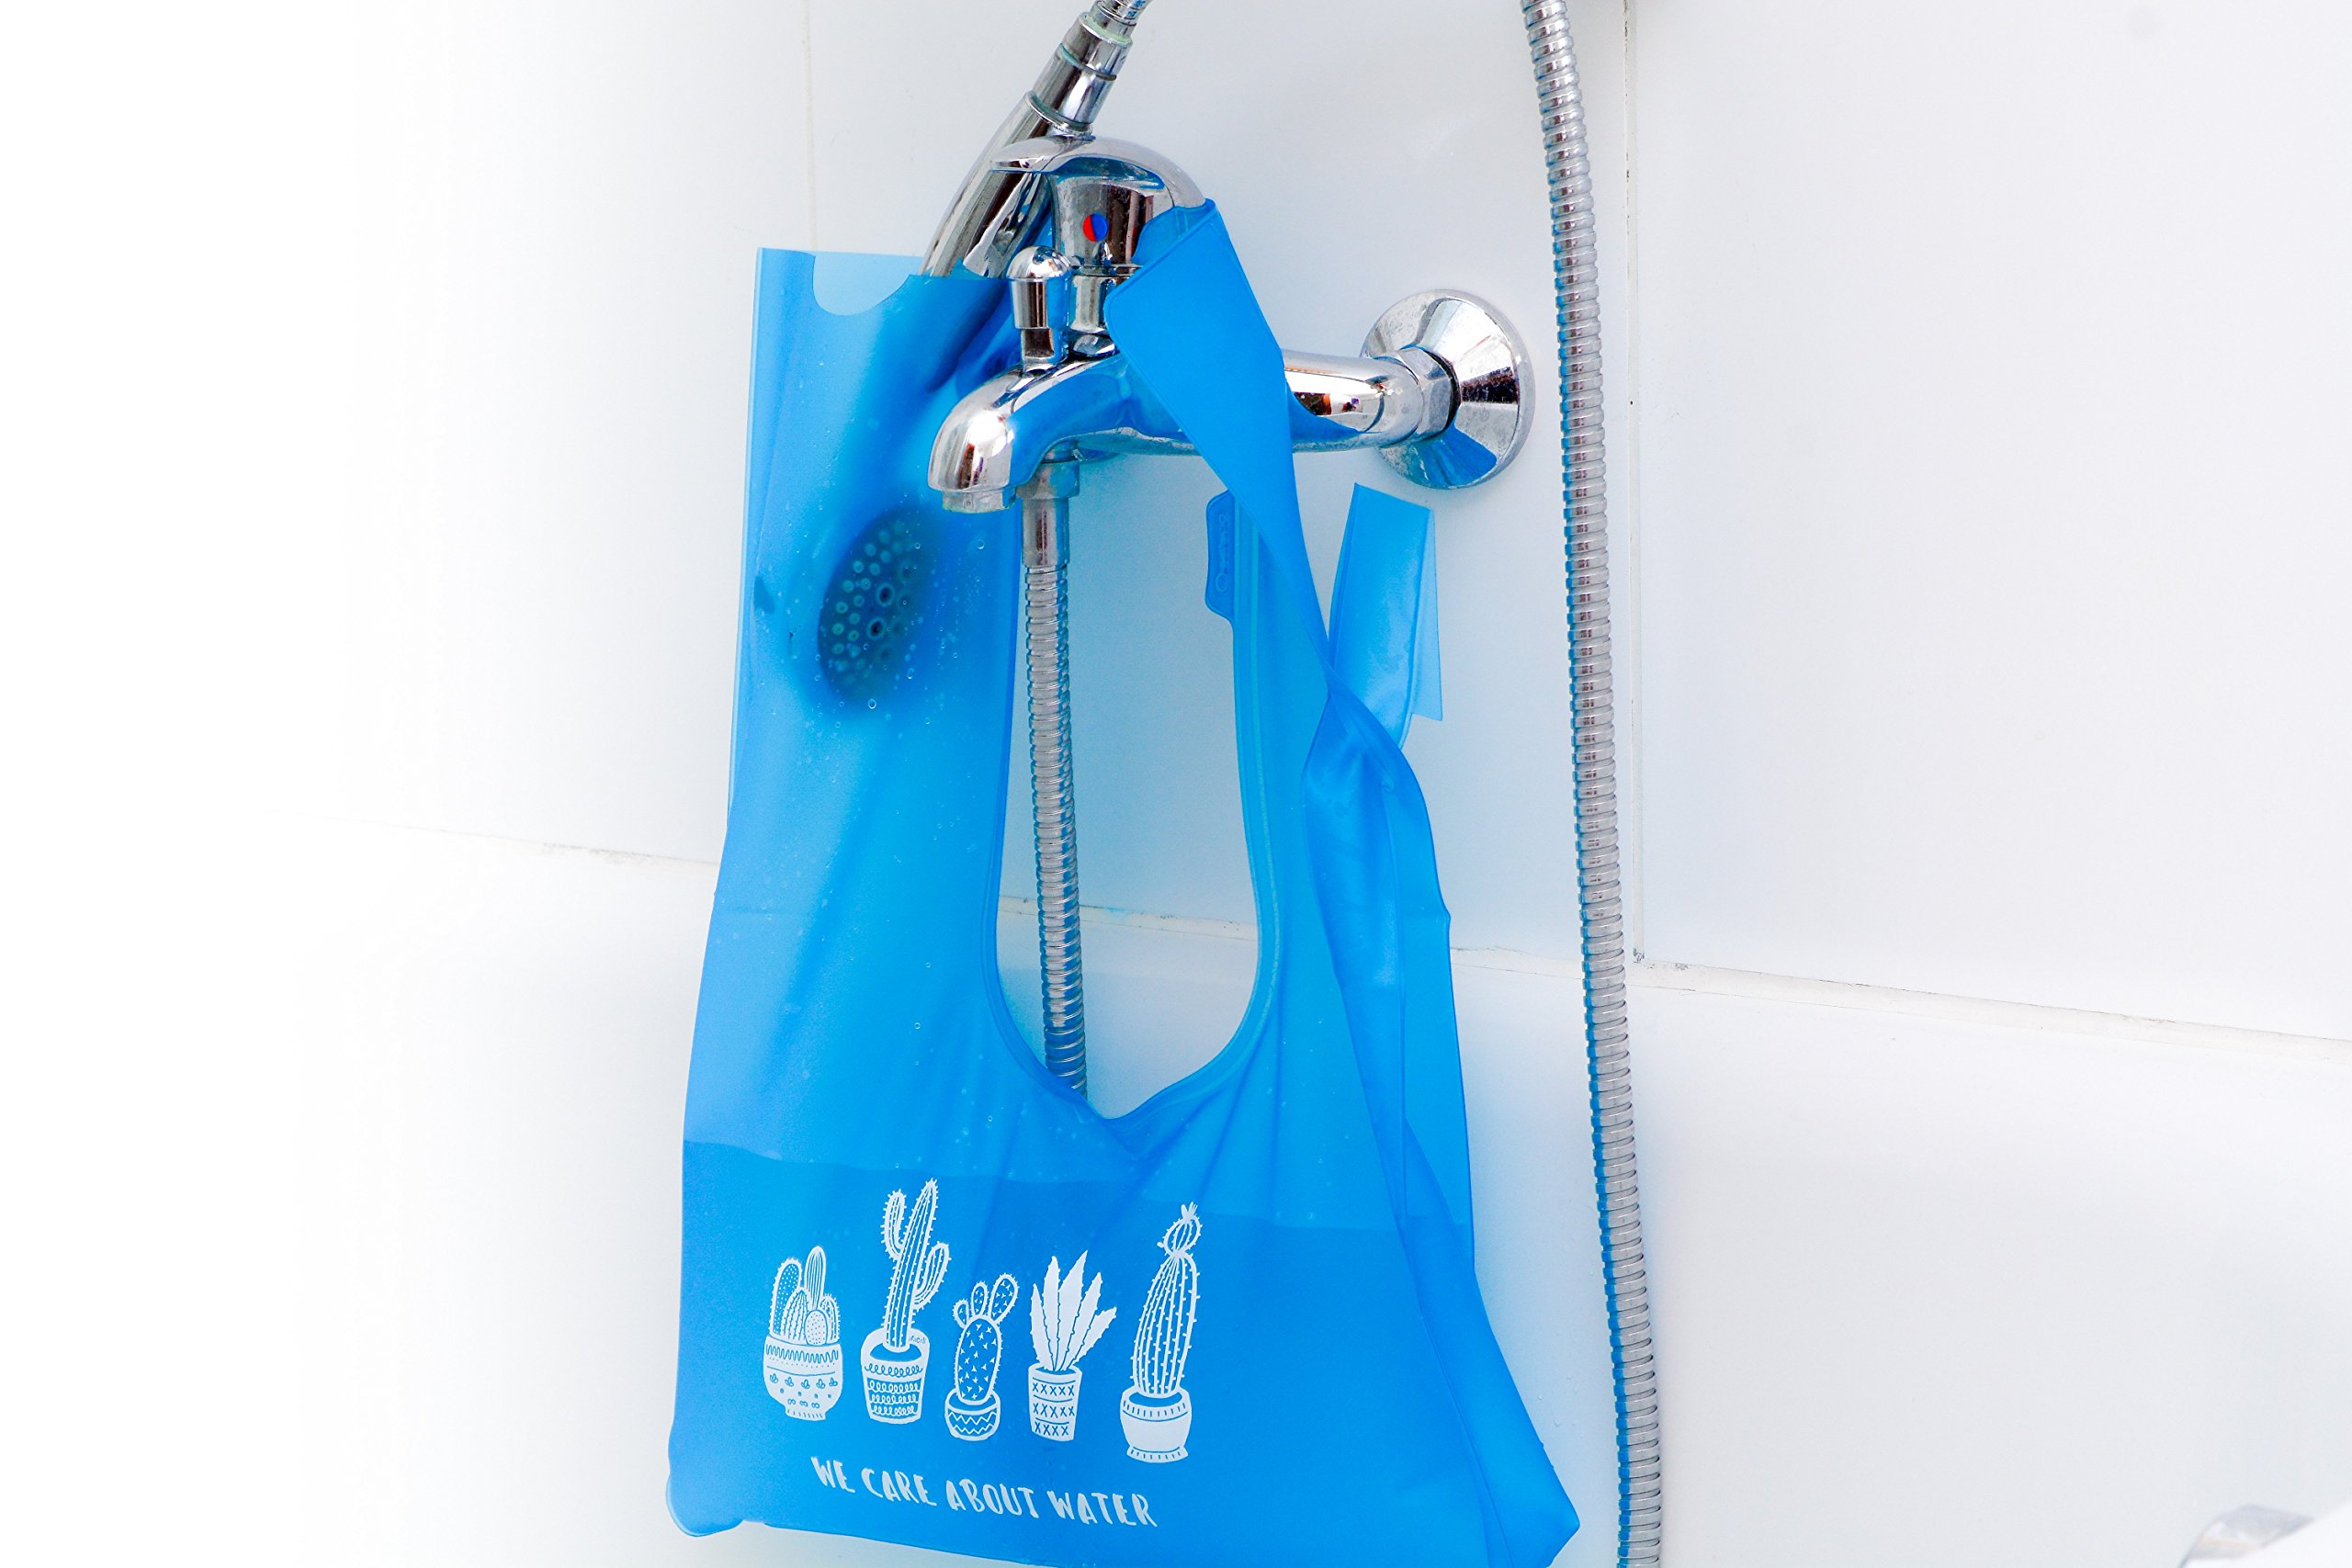 MEP - 3 Liter Portable Water Carrier Bag,Indoor,Outdoor,Camping,Cleaning,Irrigation, Sport,Storage, Folding Water Bag